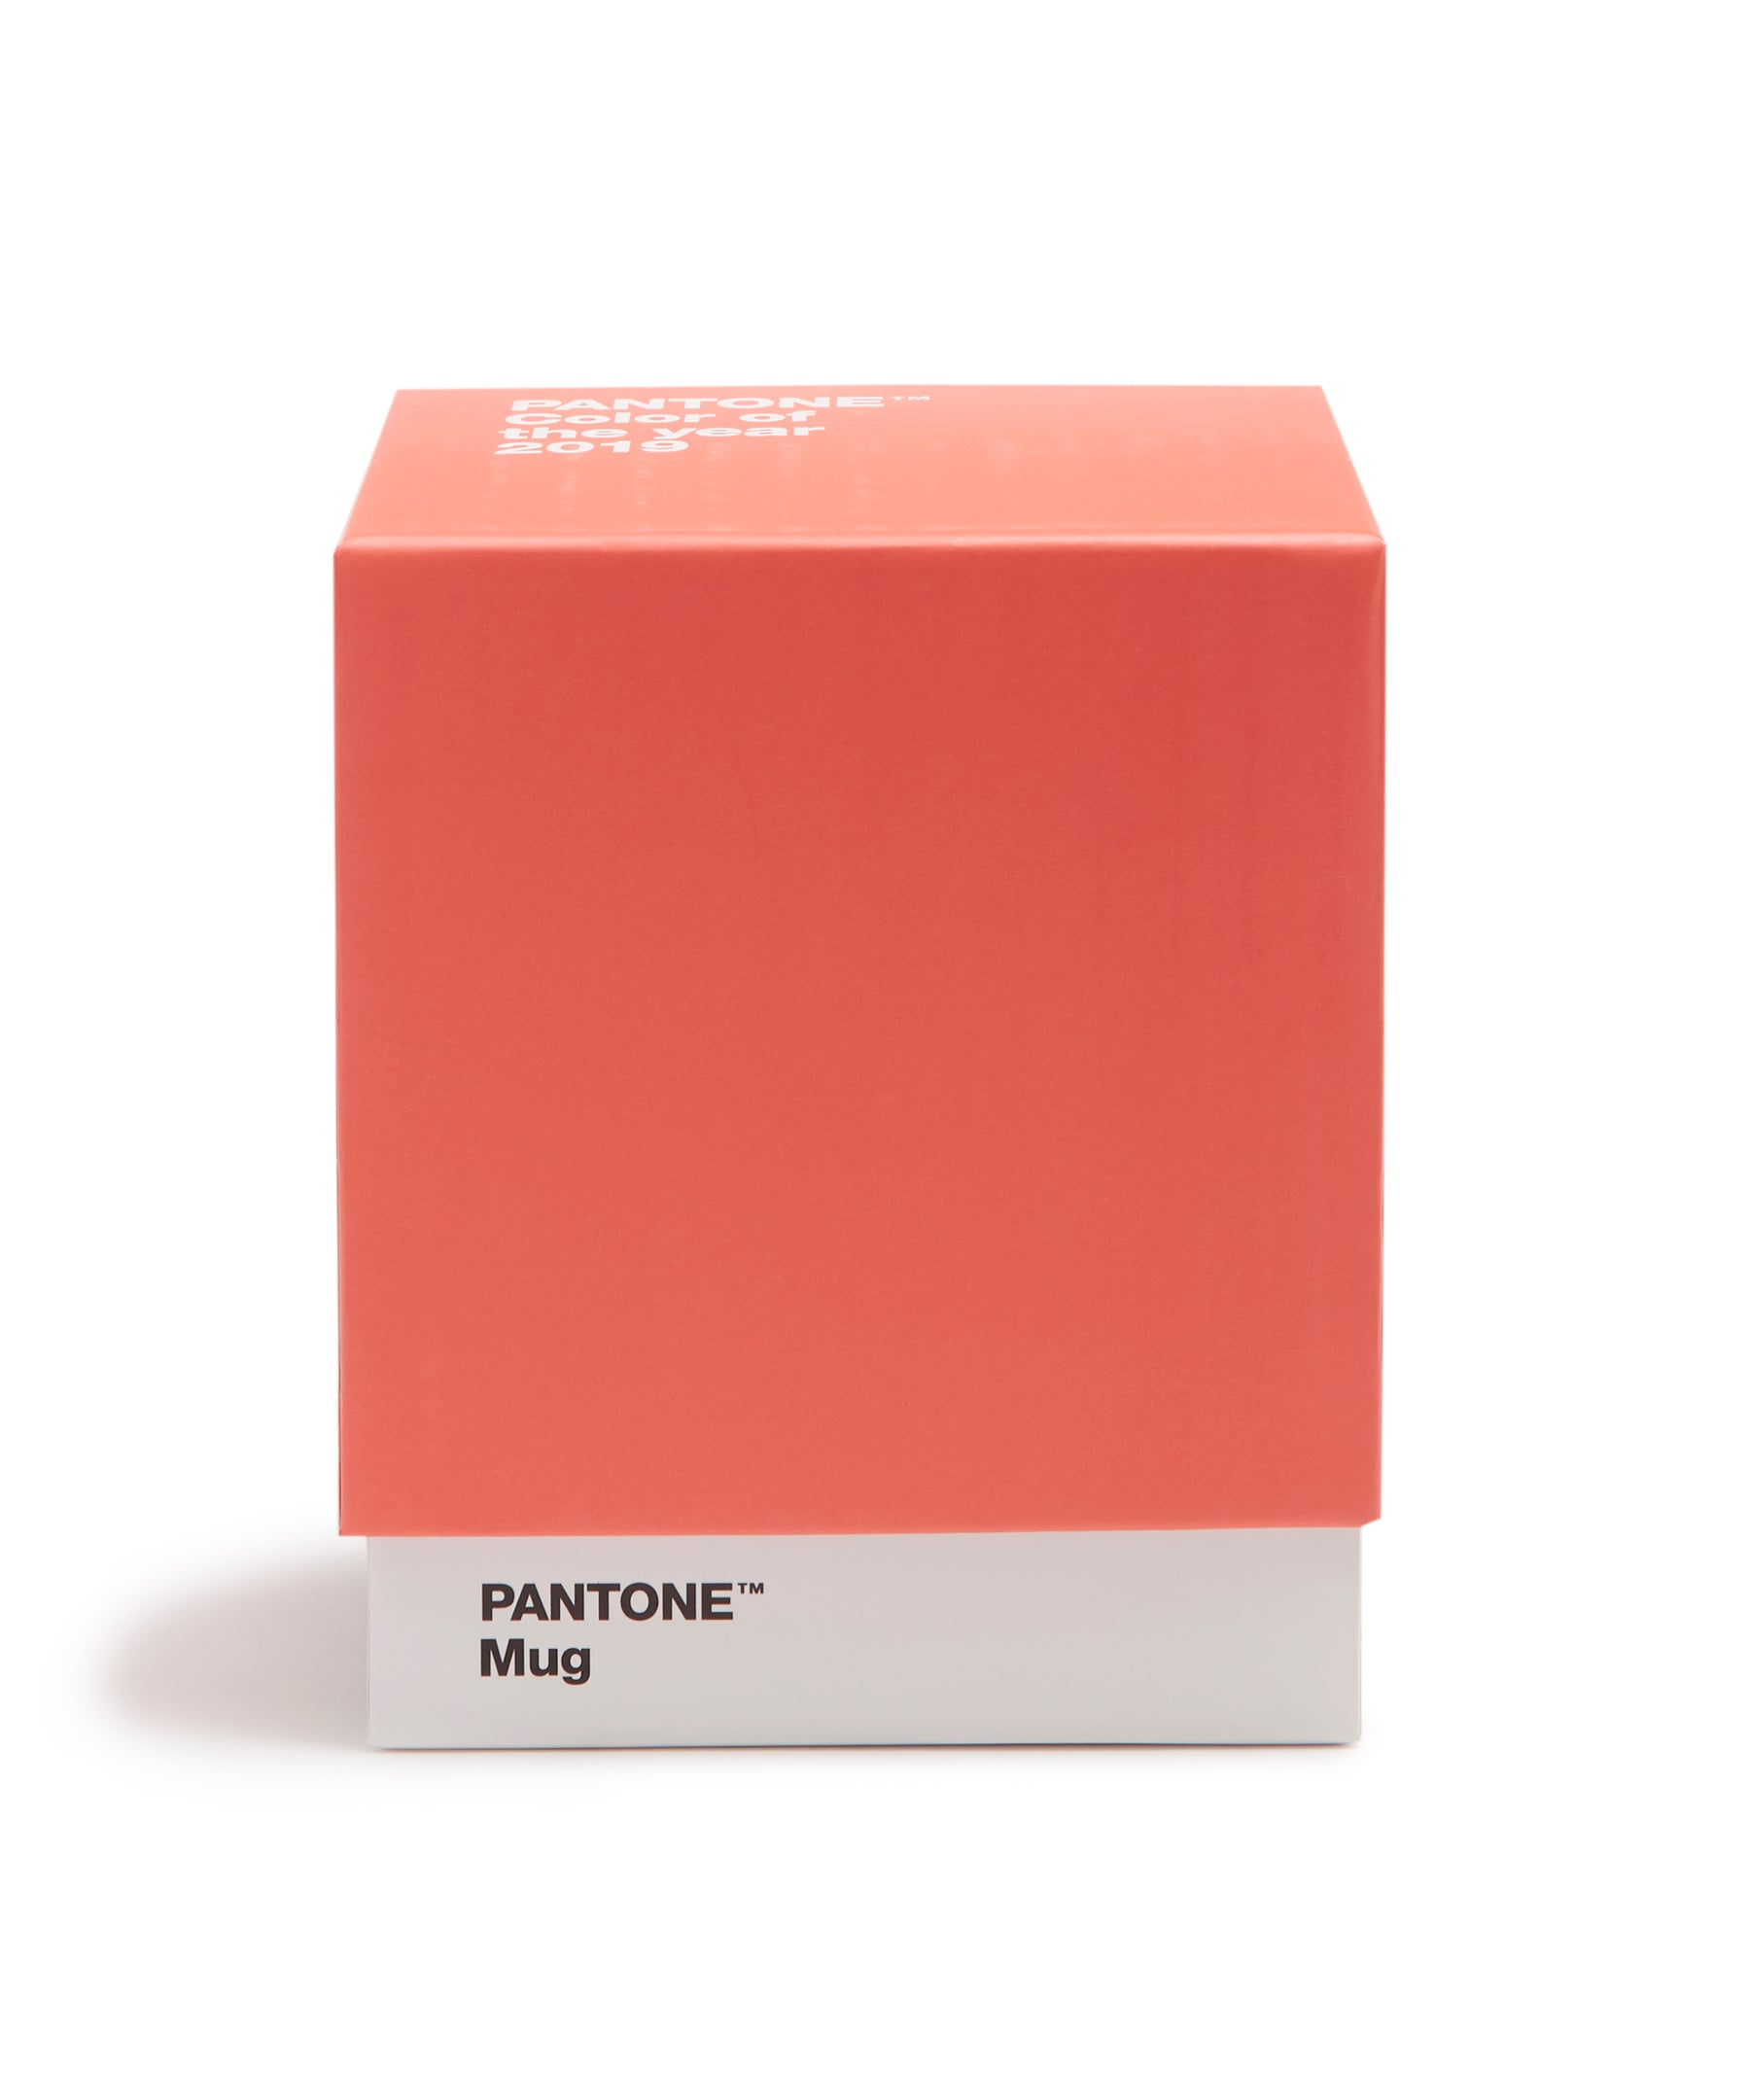 Pantone Colour of the Year Mug 16-1546 by Pantone